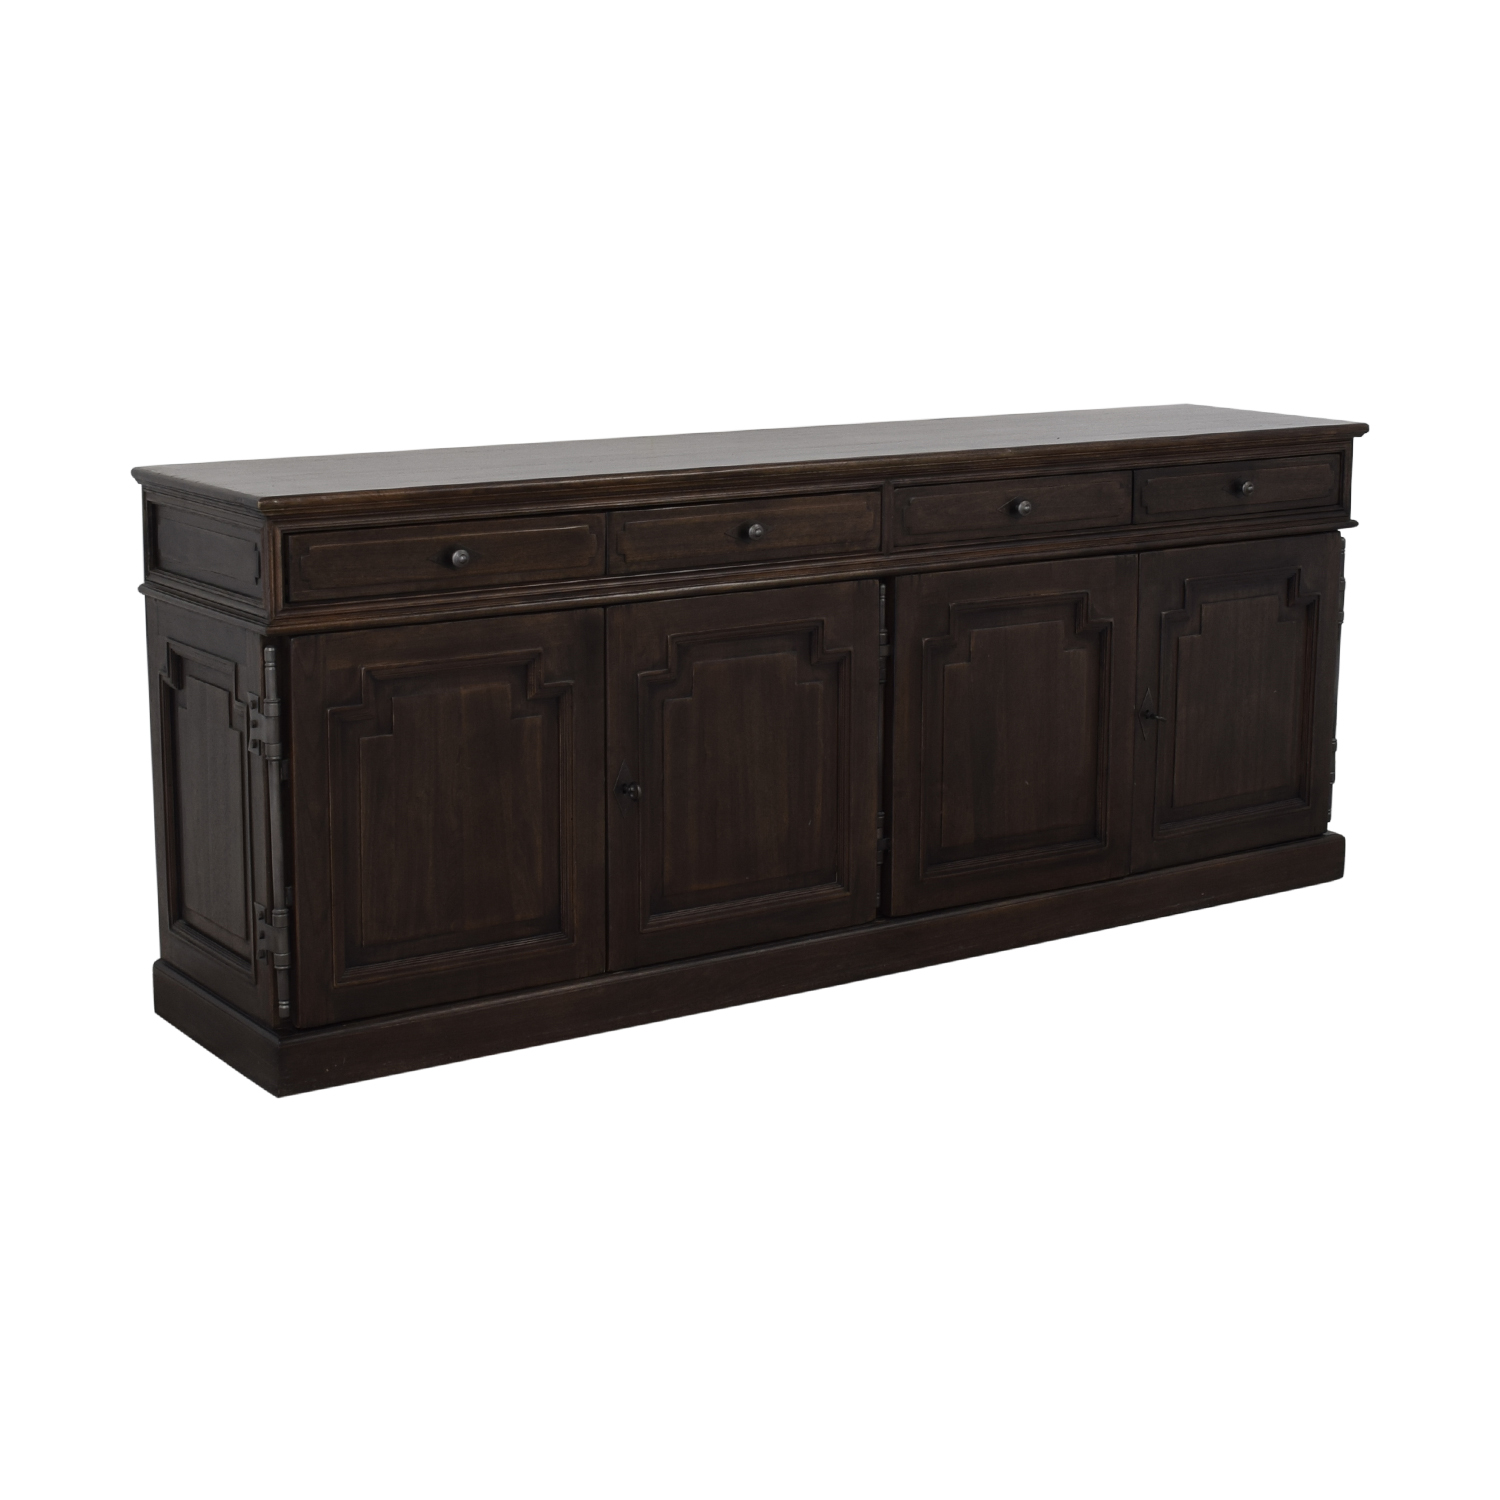 Restoration Hardware Restoration Hardware Montpellier Sideboard With Drawers brown